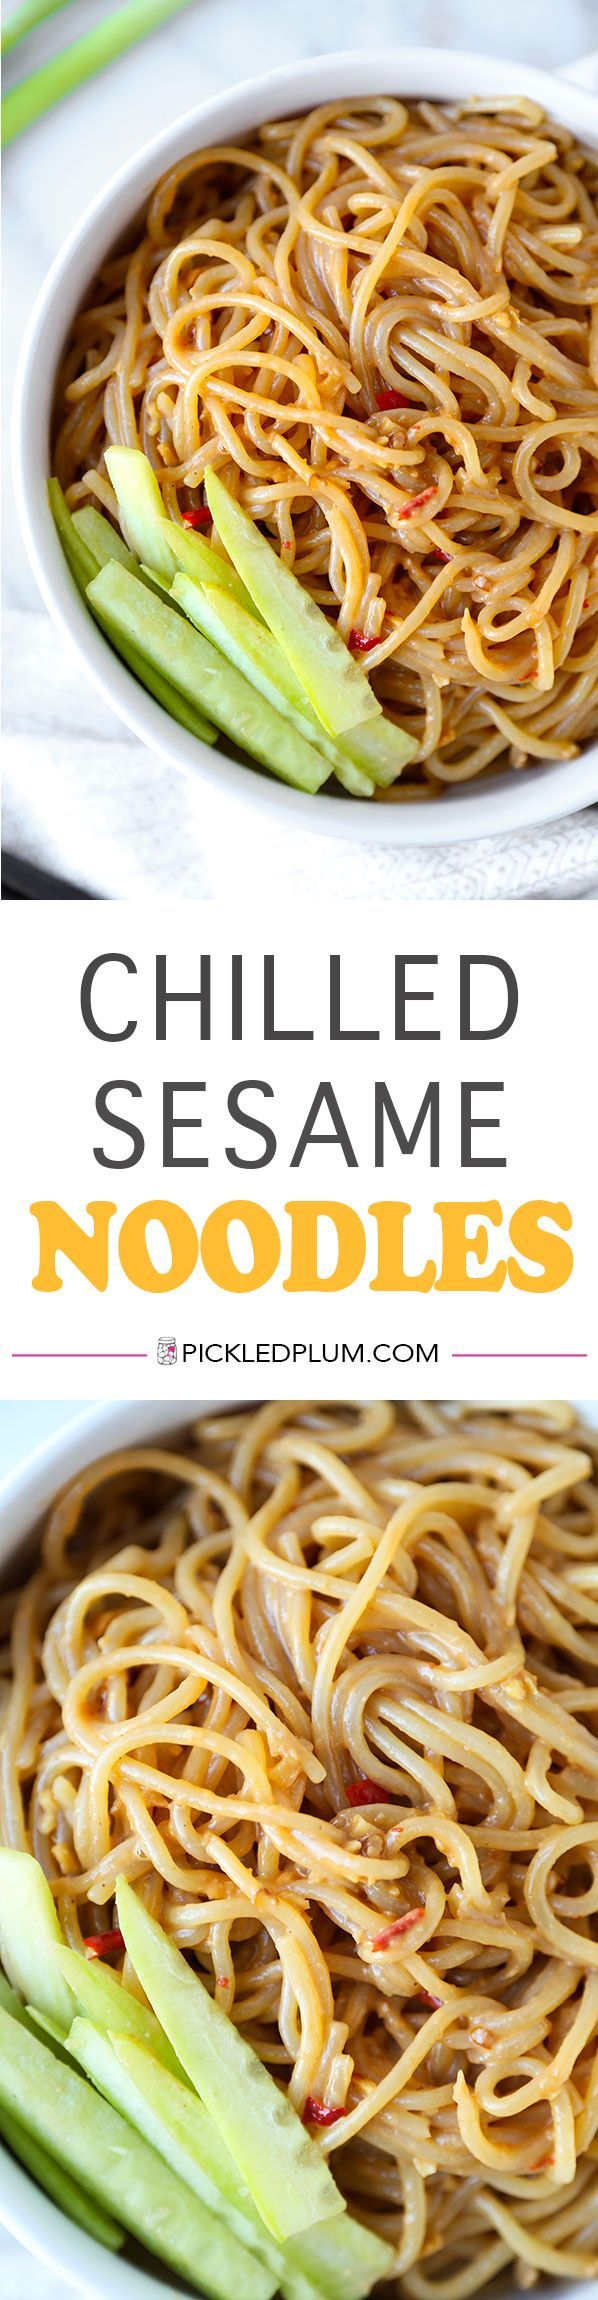 Chilled Sesame Noodles - Delicious eggs noodles tossed in a nutty, spicy and sweet sesame sauce. Ready in 15 minutes from start to finish and so much better than delivery! Recipe, Chinese, Noodles, Dinner, Appetizer | pickledplum.com